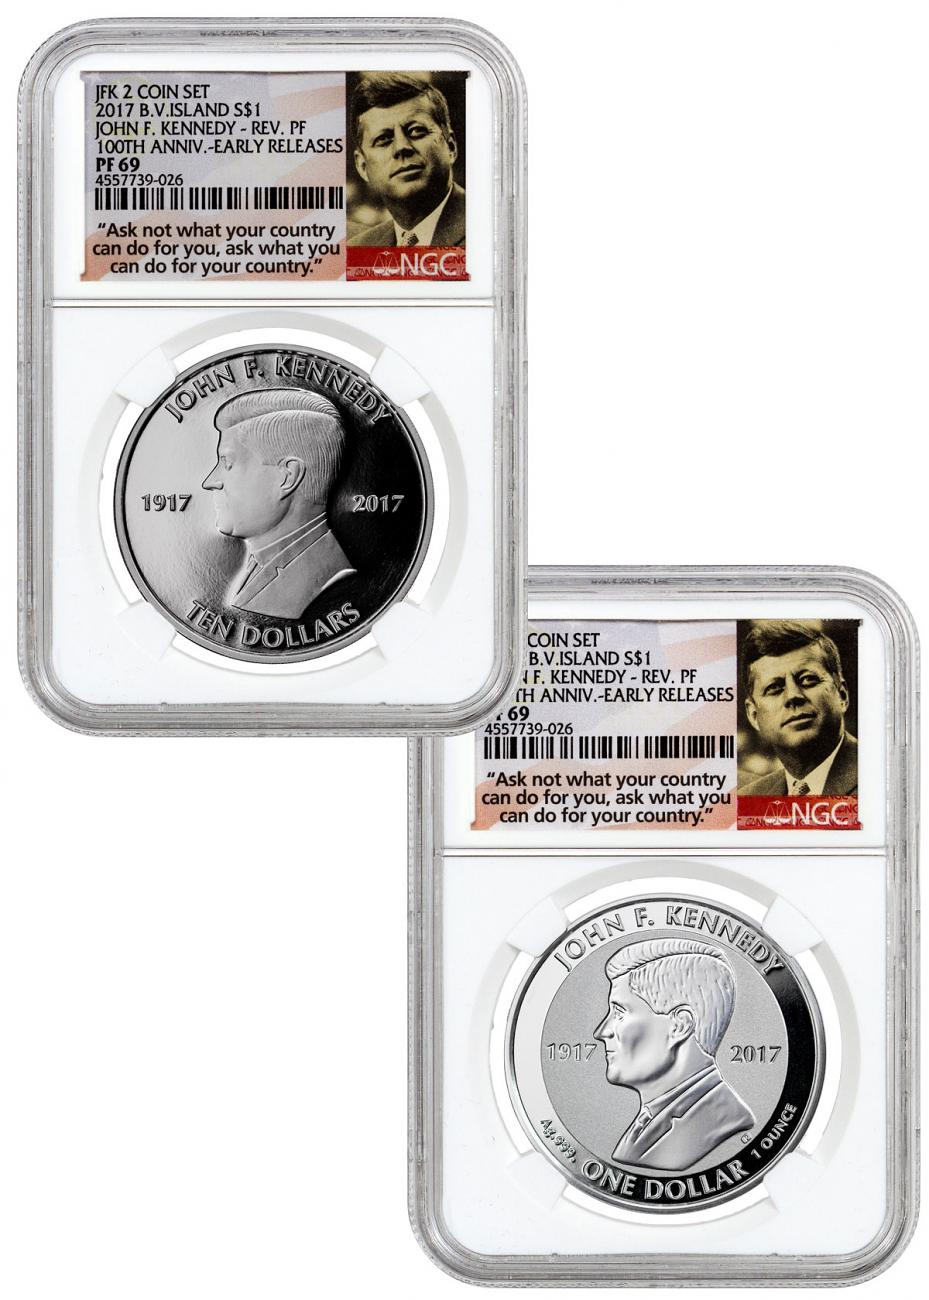 2-Coin Set - 2017 British Virgin Islands John F. Kennedy - 1 oz Silver Proof + Reverse Proof $1 Coins NGC PF69 ER Ask Not Label